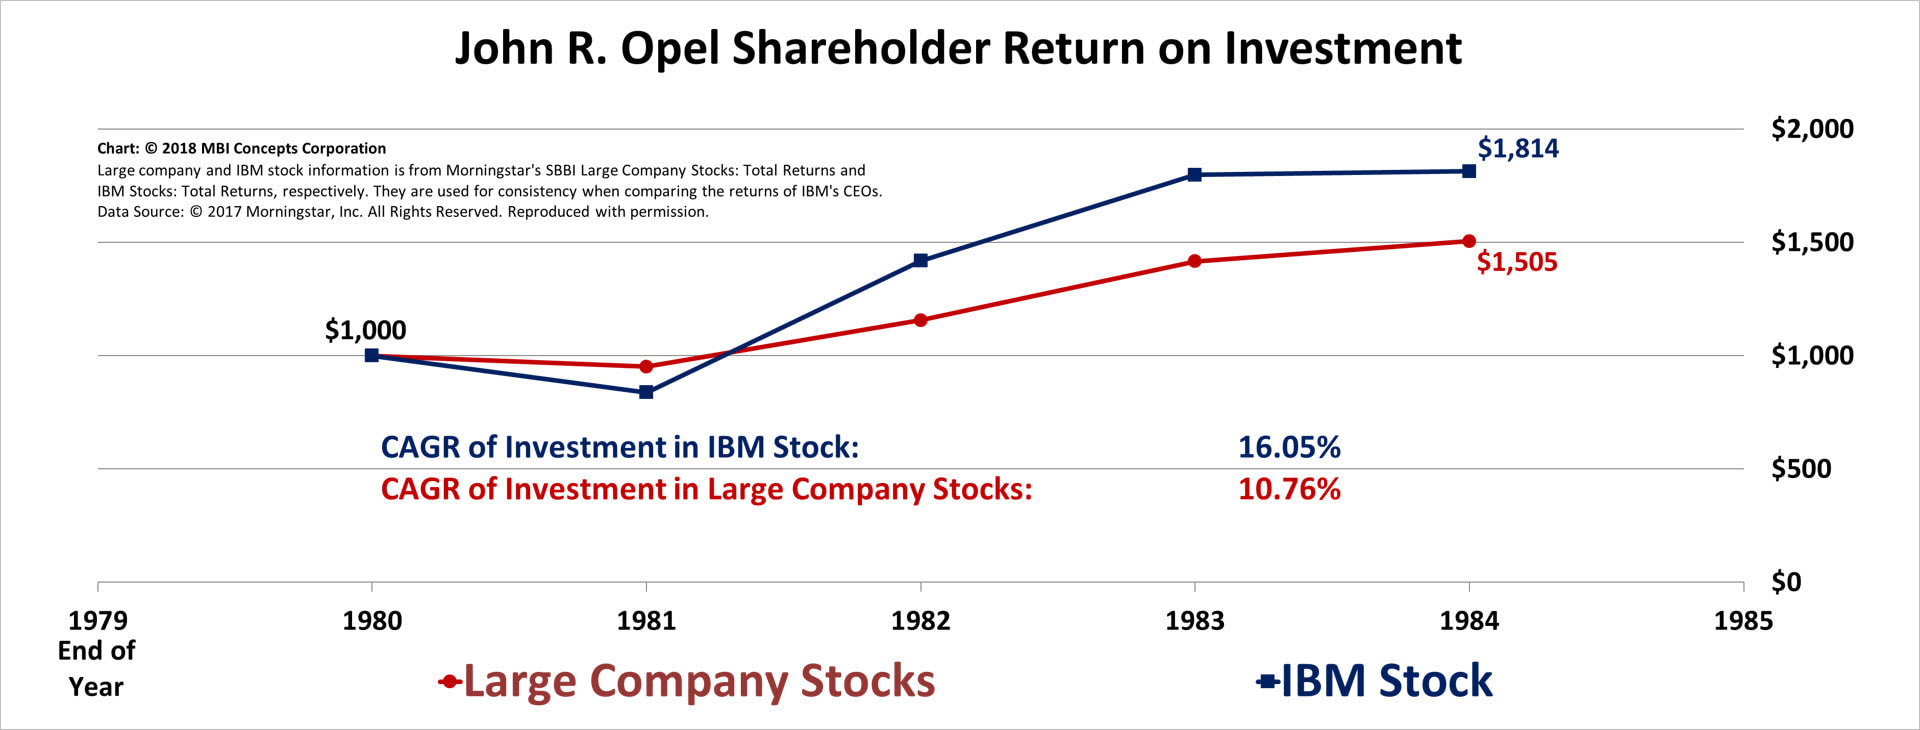 Line chart of John R. Opel's Shareholder Returns from 1981 through 1984 compared with large company stocks.